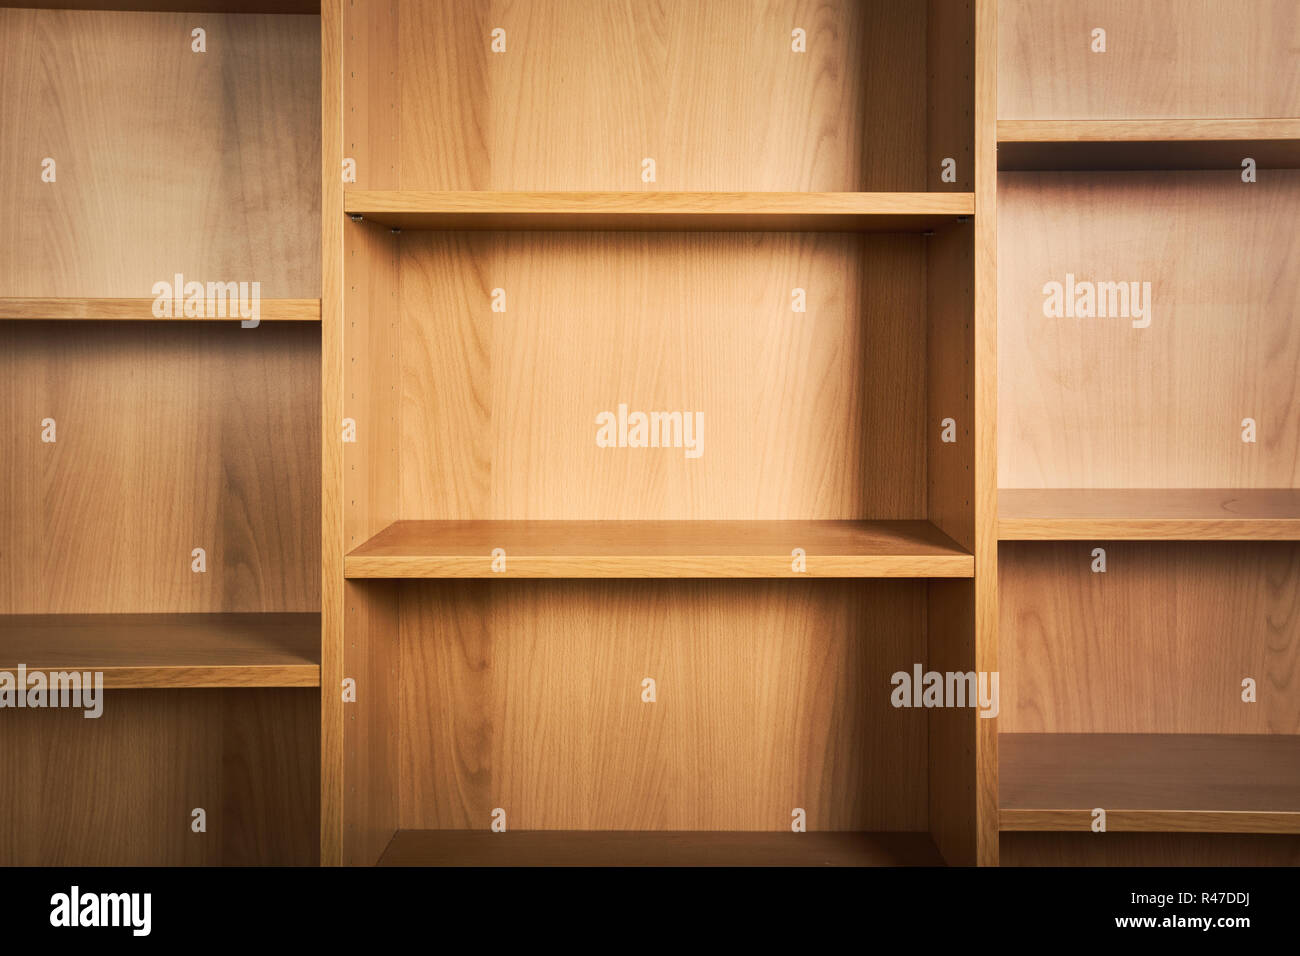 Empty wooden book shelves background. - Stock Image